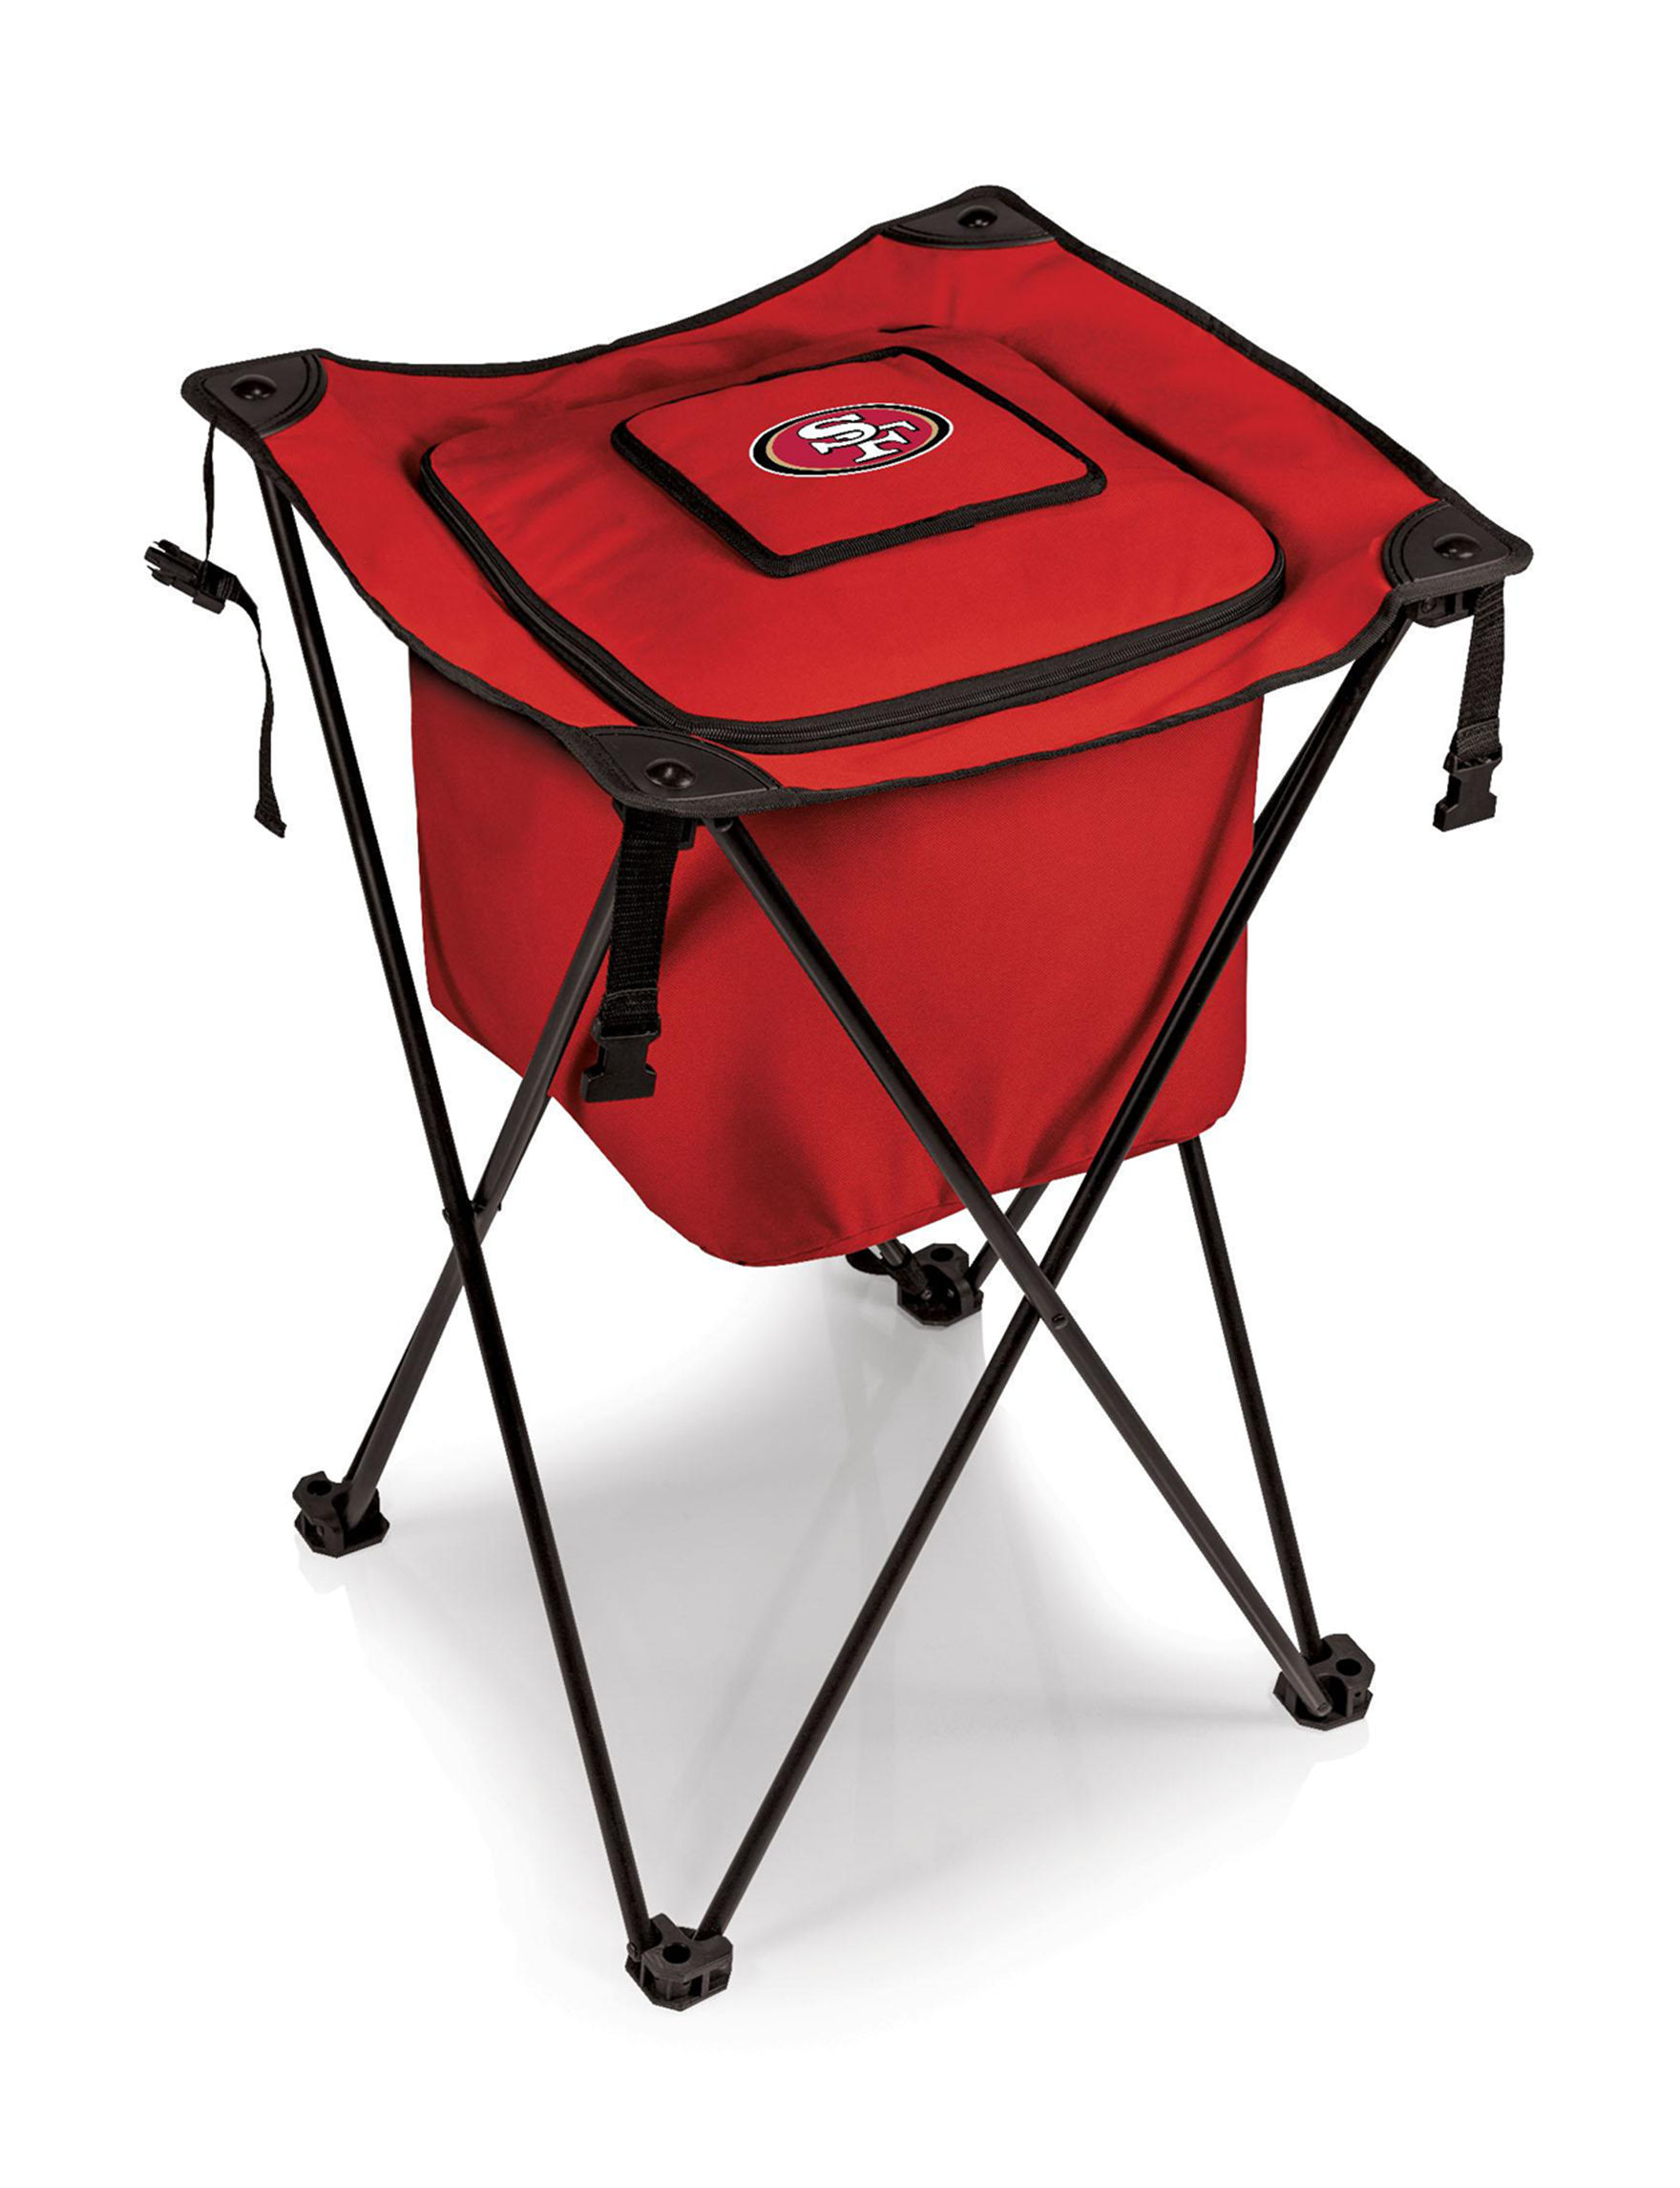 Picnic Time Red Coolers Camping & Outdoor Gear